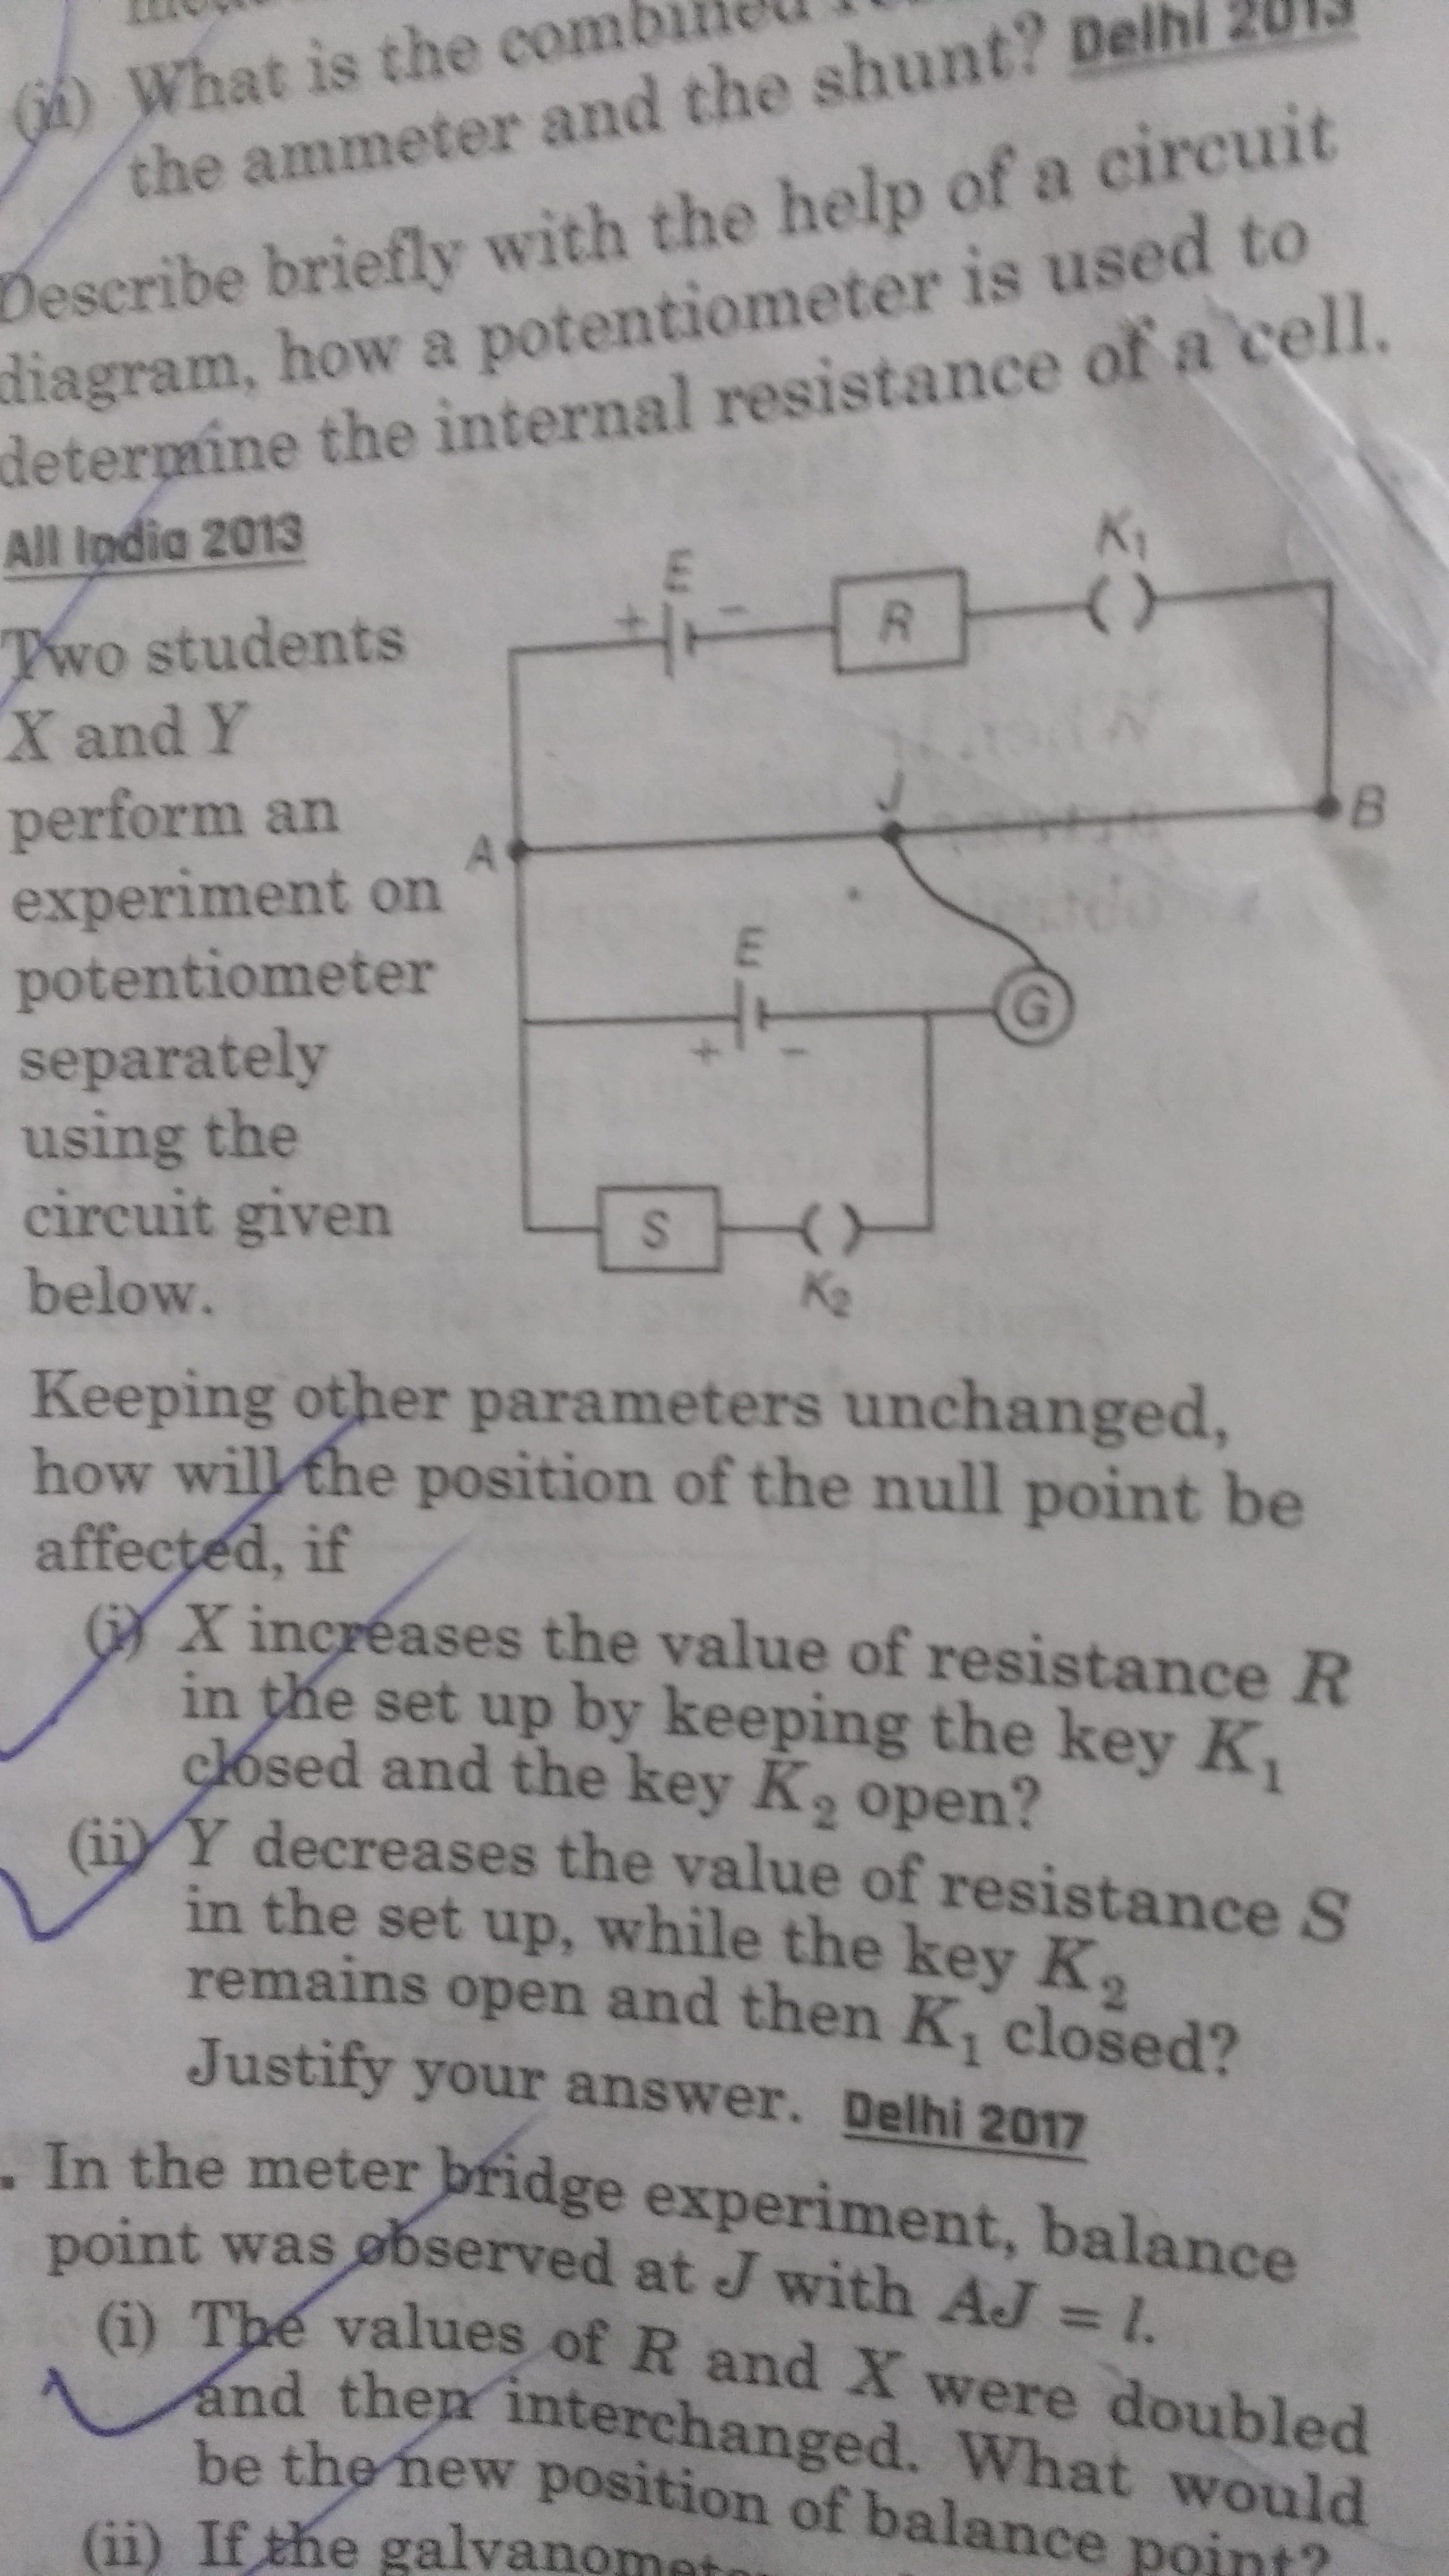 How is the null point shifted when resistance R is increased? And ...